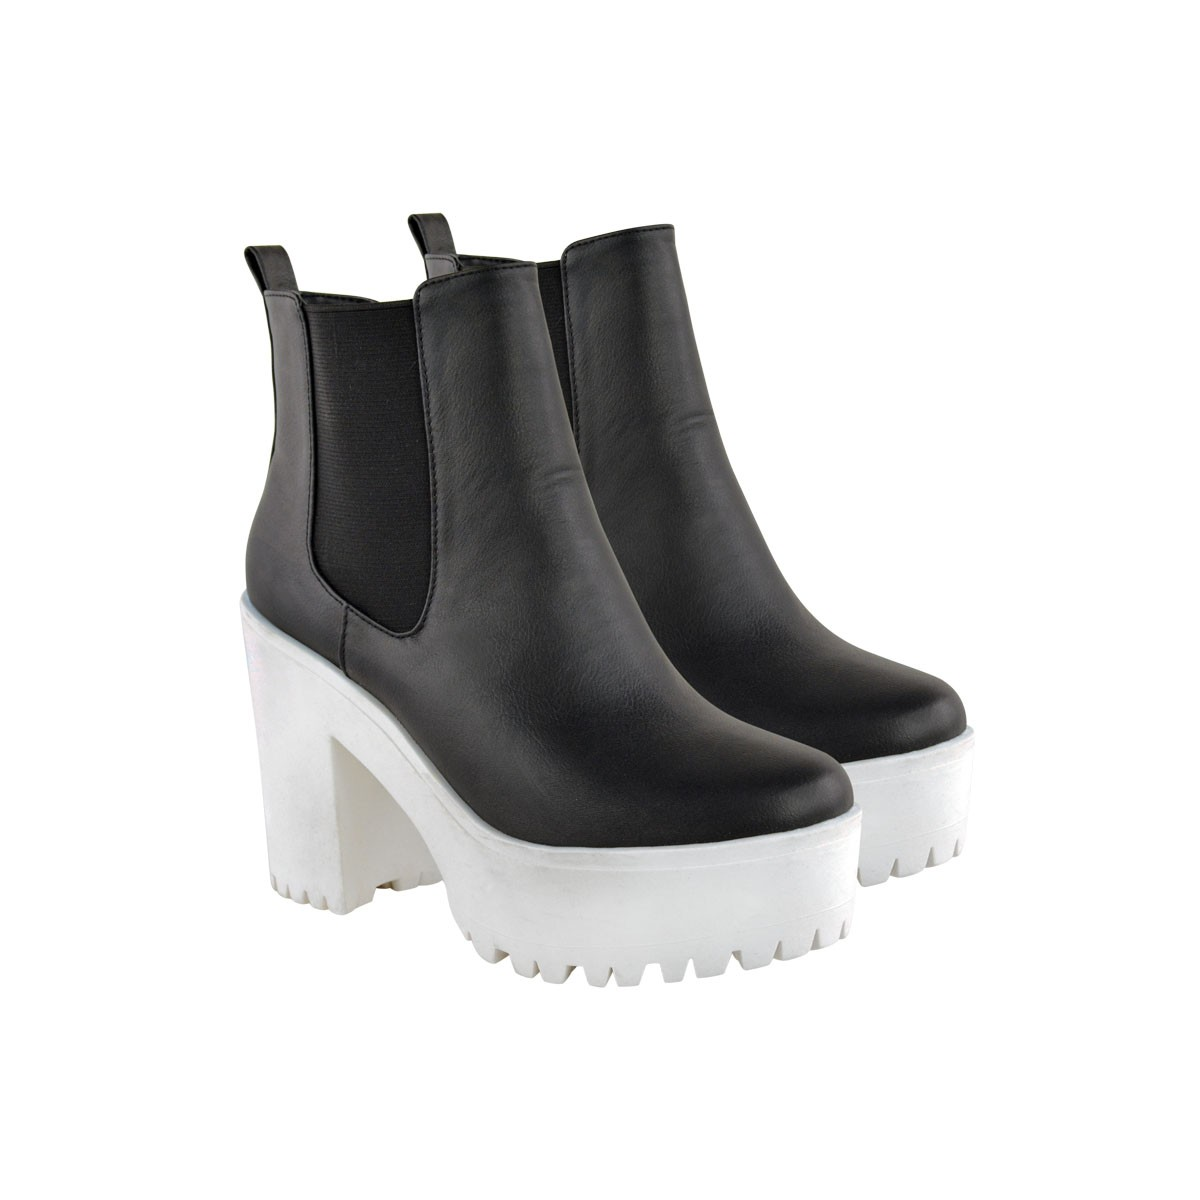 Monochrome Suede Cleated Sole Chunky Platform Boots - Delphine